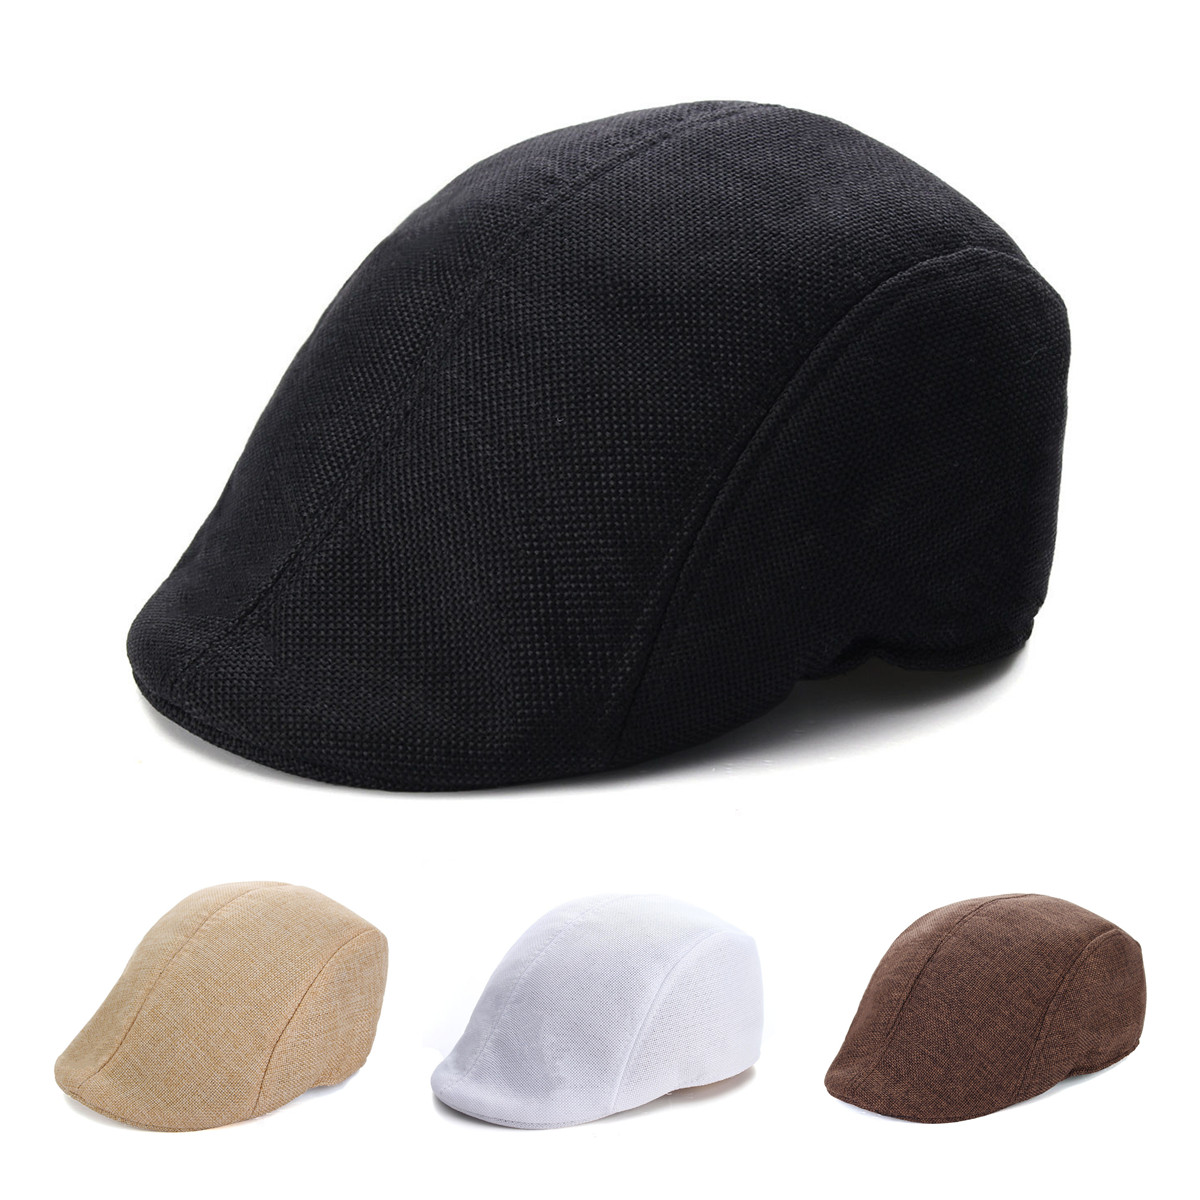 Mens Herringbone Flat Hat Peaked Racing Country Golf Newsboy Beret Cap mens male beret retro cotton visor gorras planas hat cabbie ivy cap